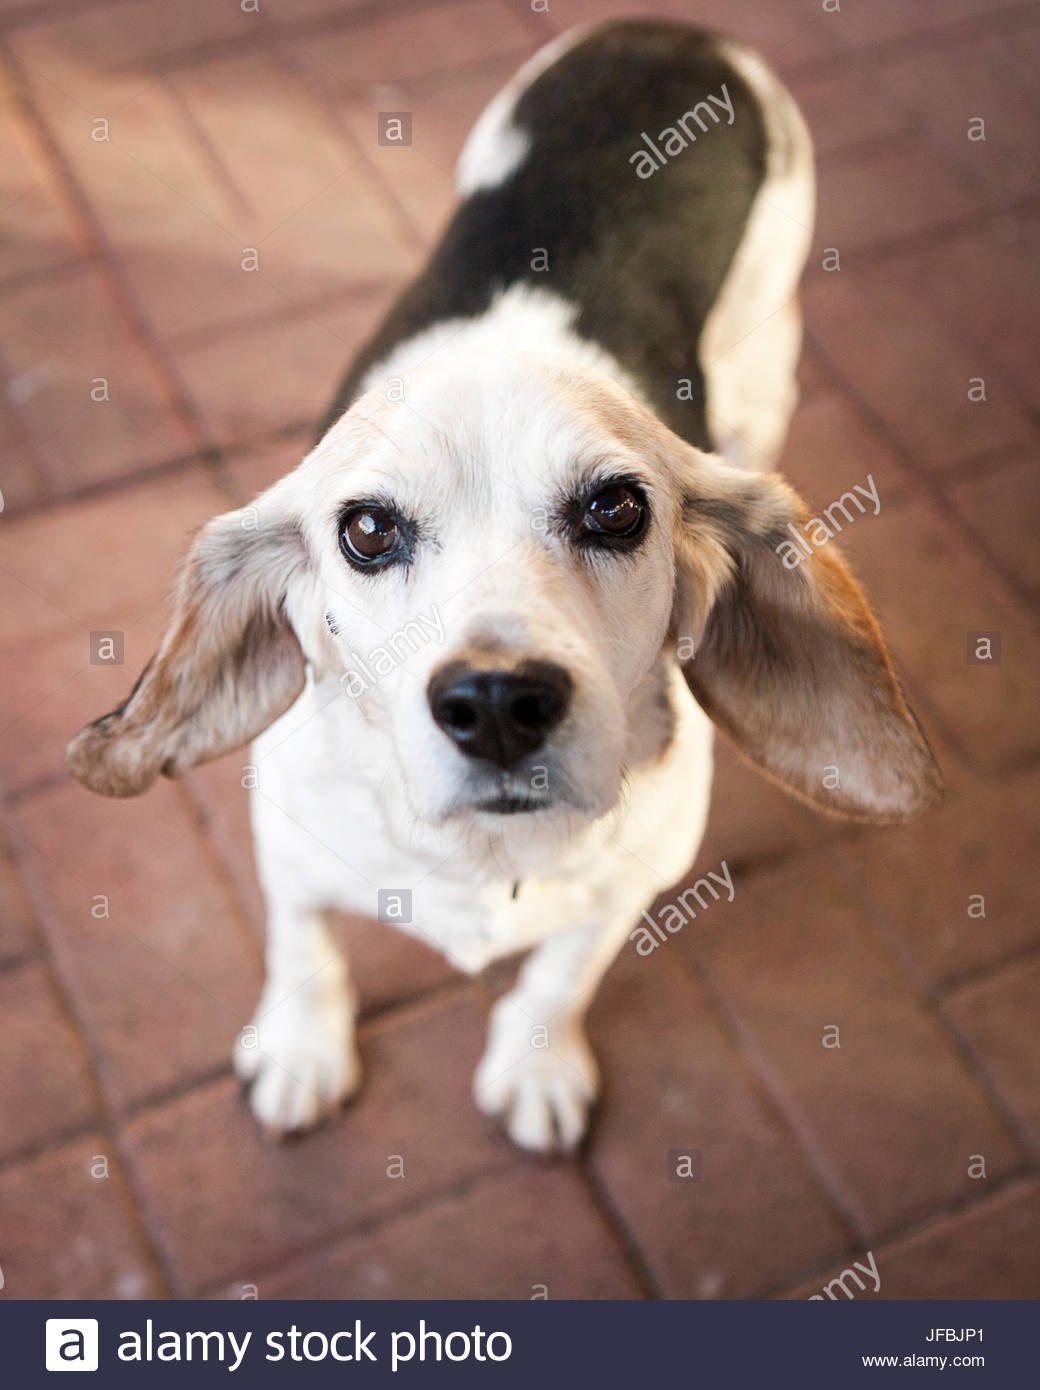 A rescued senior beagle looks at the camera at her foster home in Virginia. - Stock Image